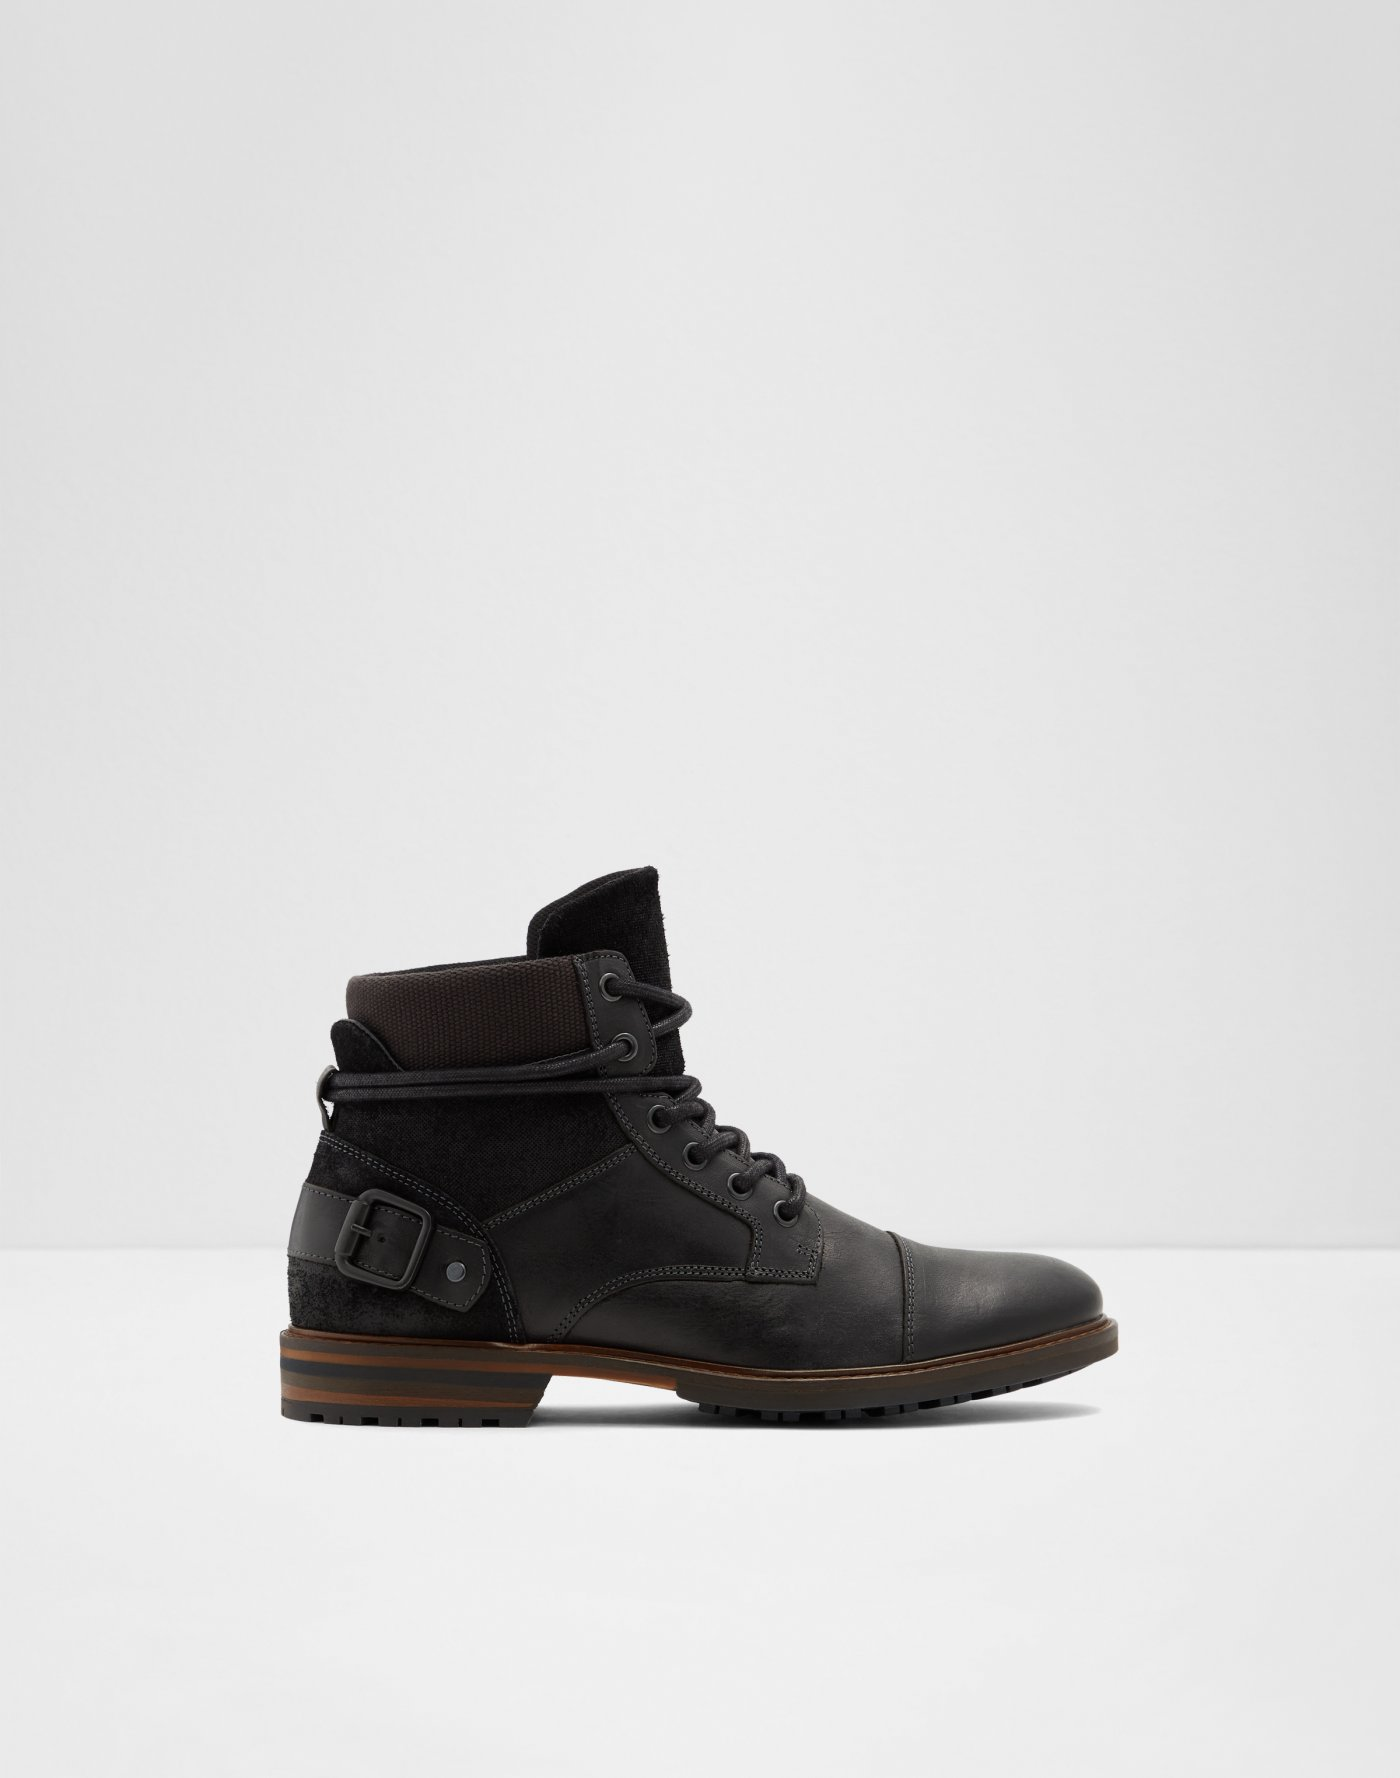 5a817494a2a Men's Boots | Dress & Chelsea Boots For Men | ALDO US | Aldoshoes.com US